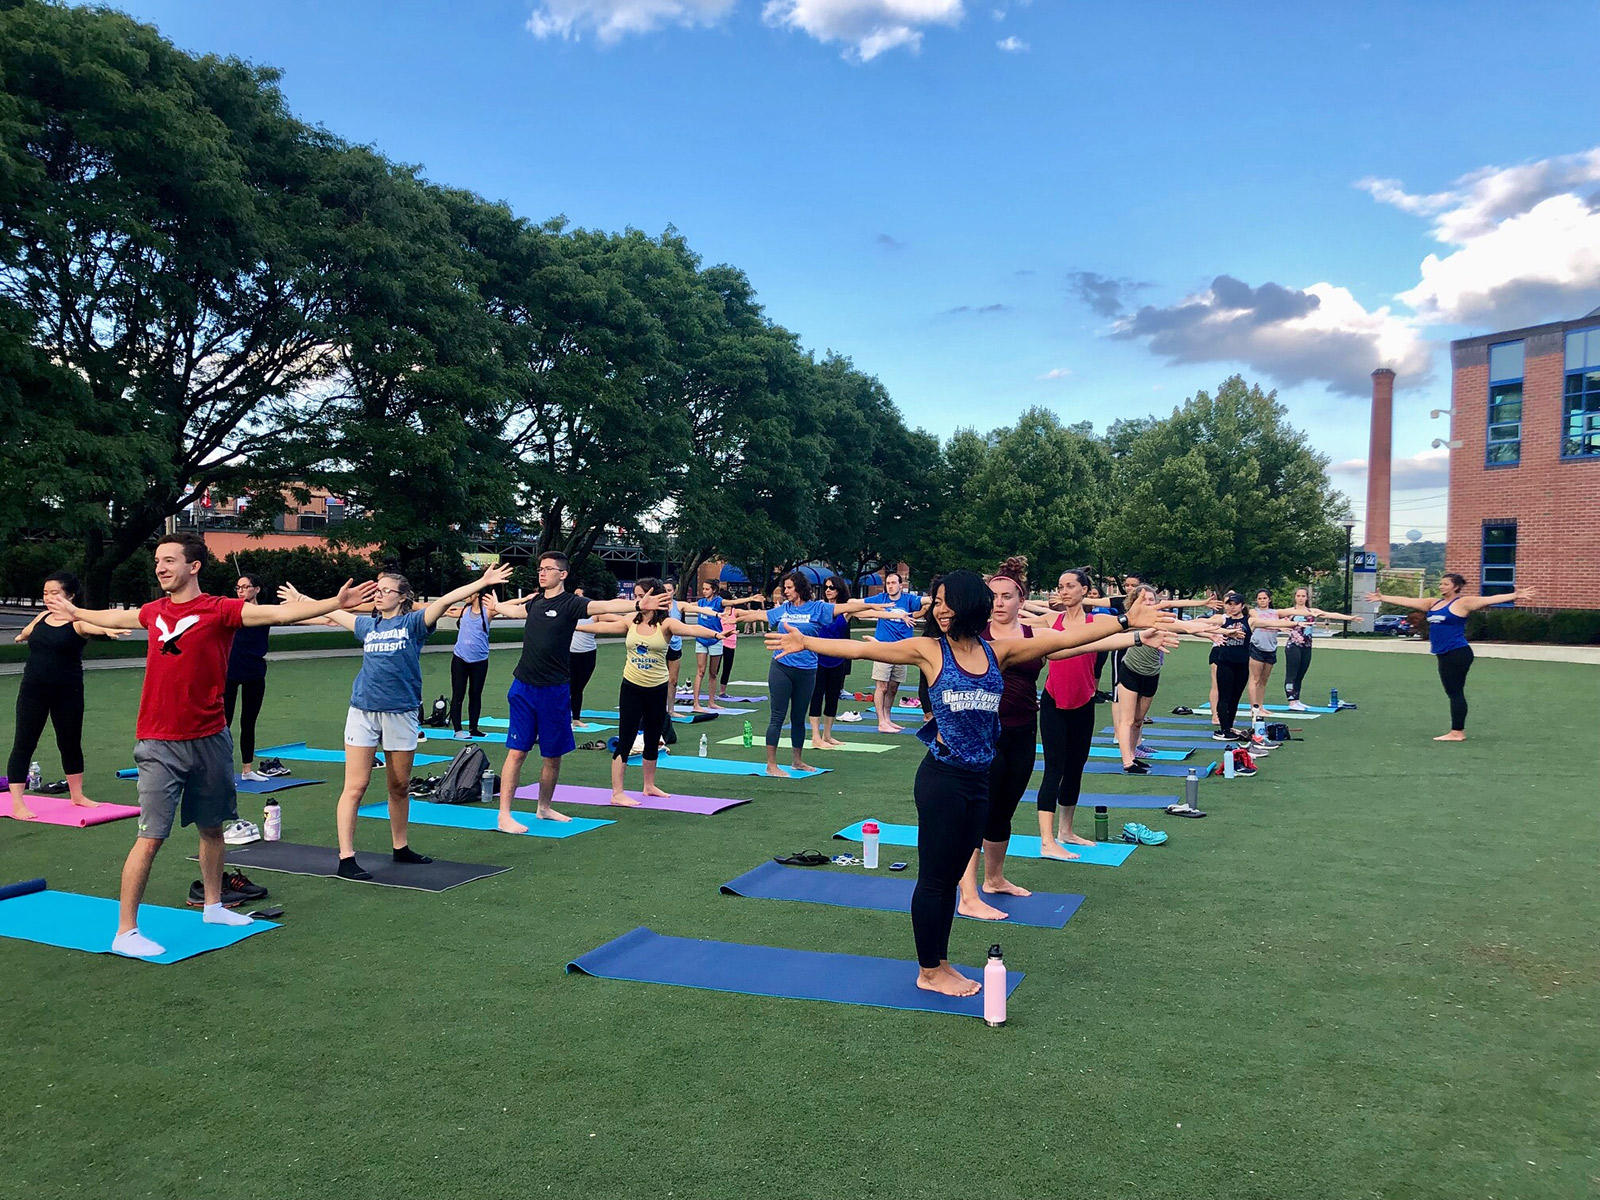 Yoga class in front of CRC on turf